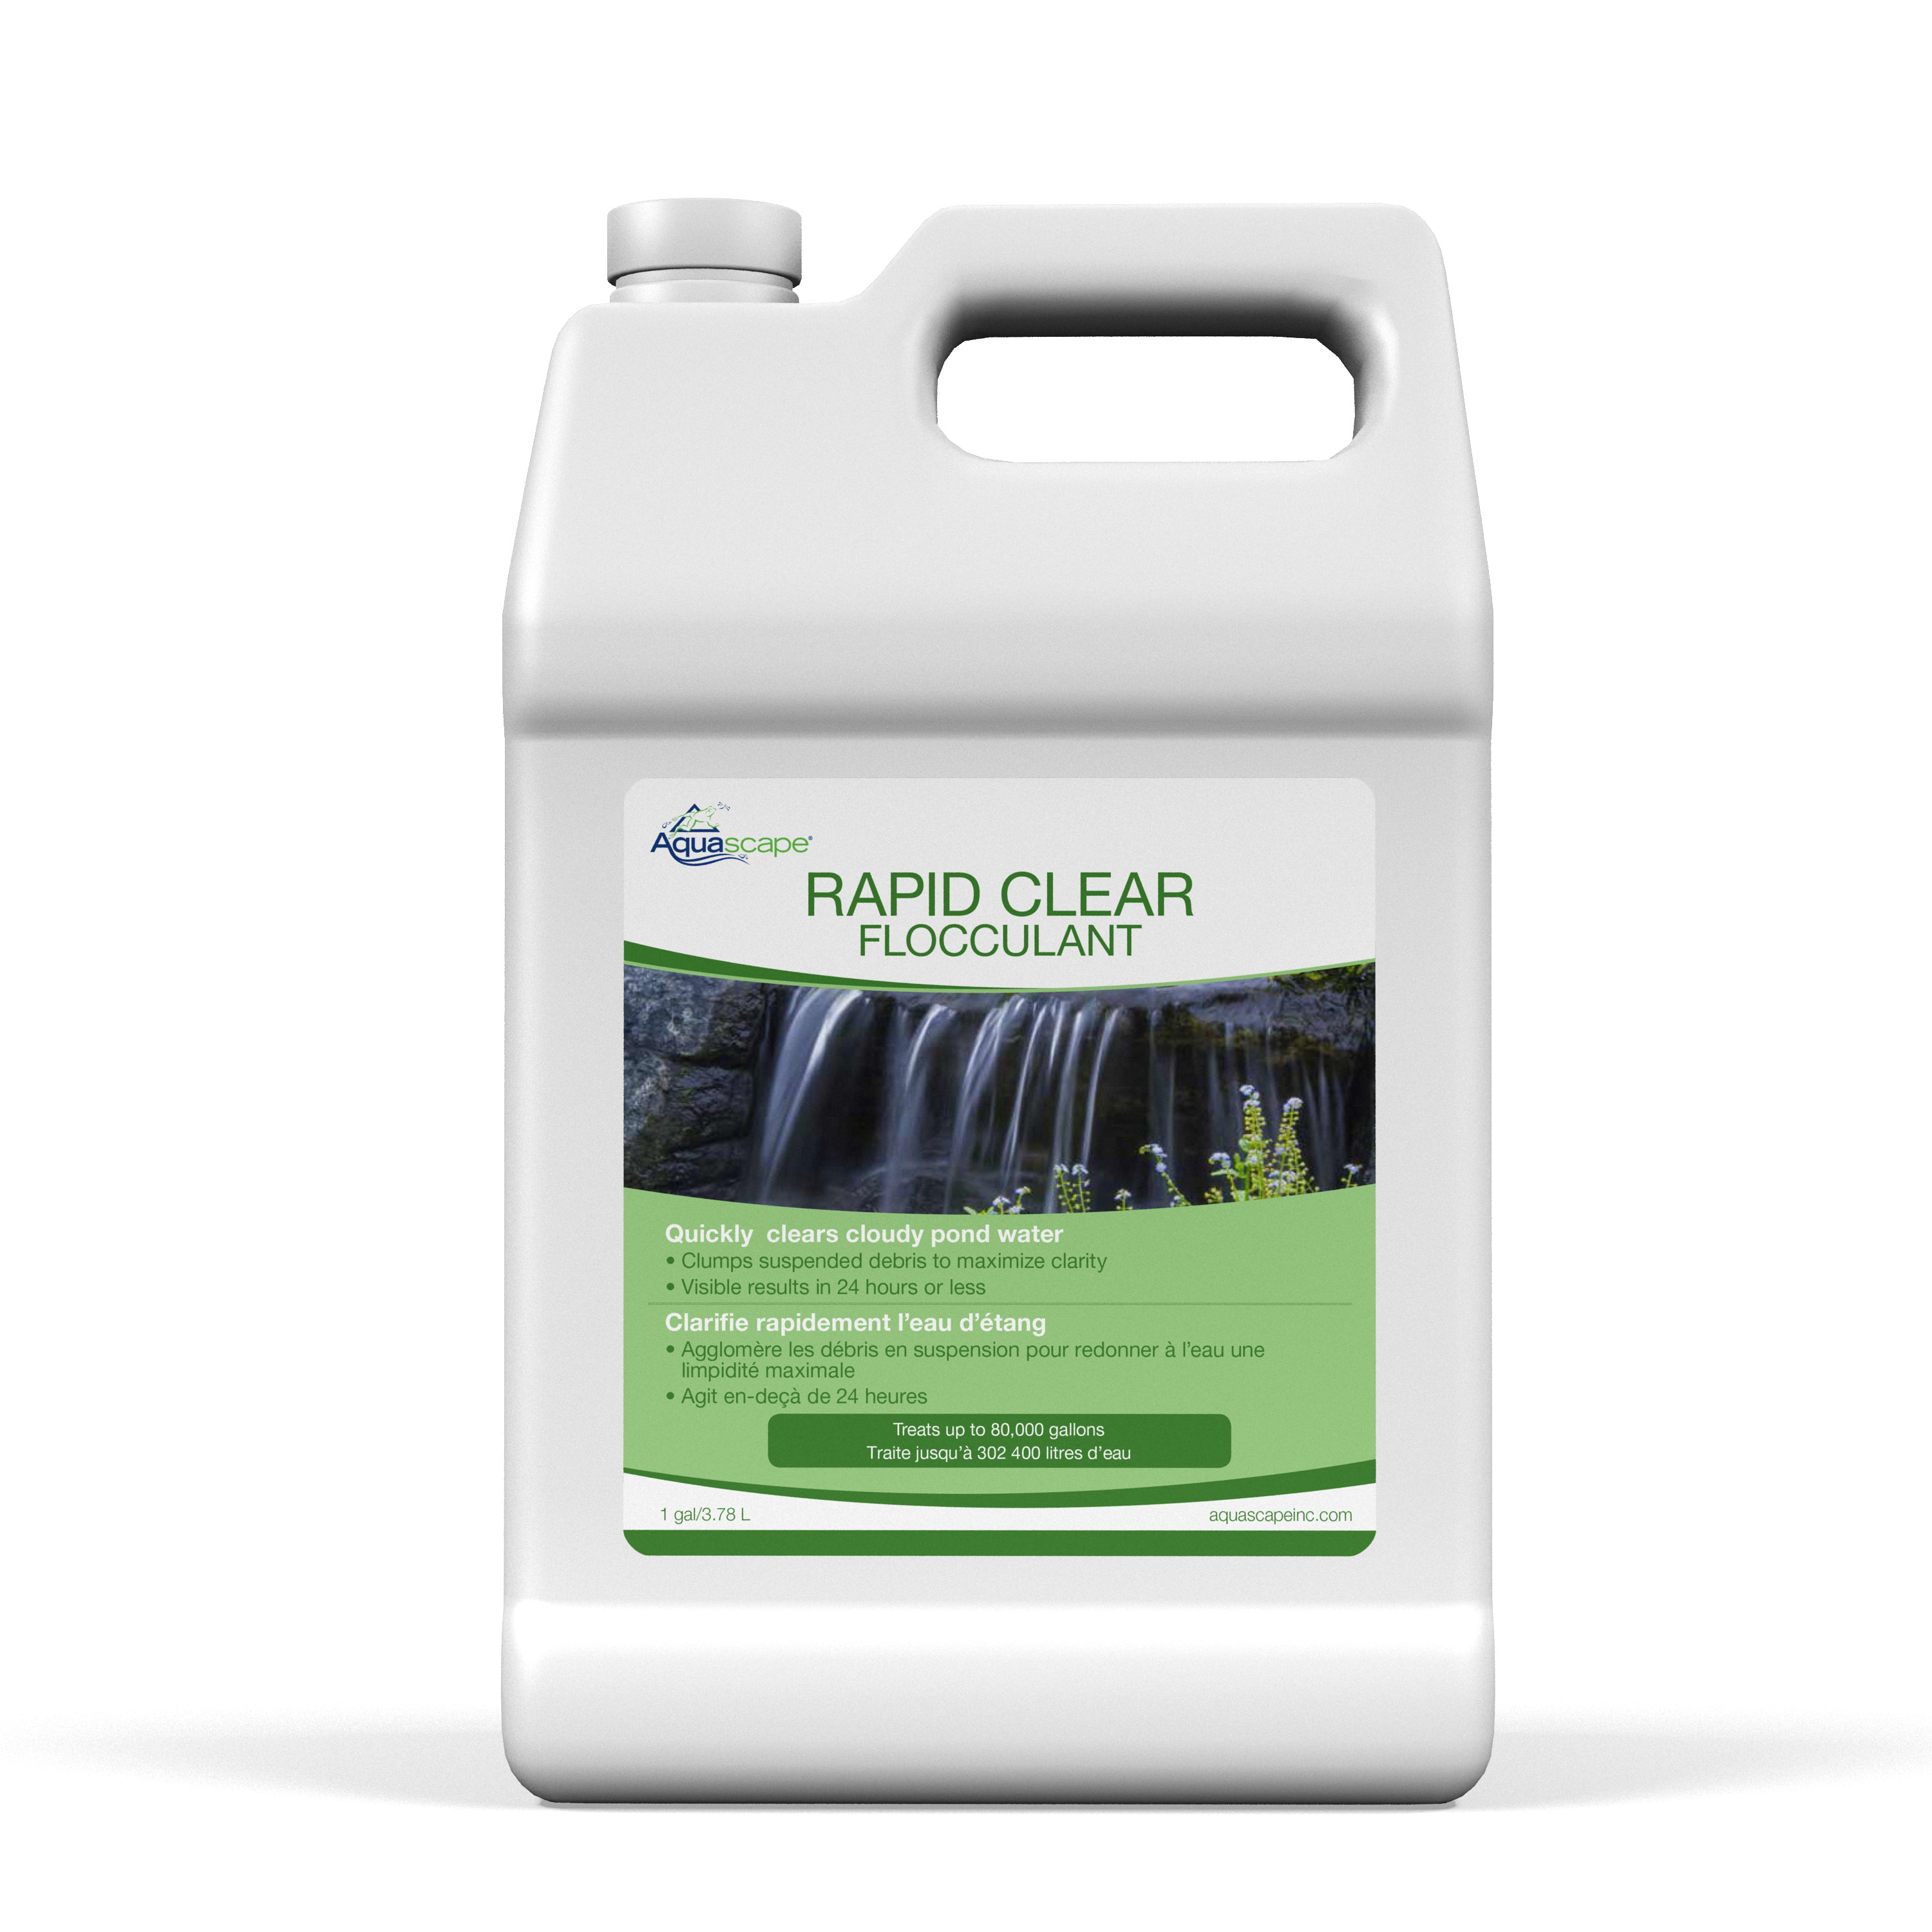 Rapid Clear Flocculant - 3.78ltr / 1 gal